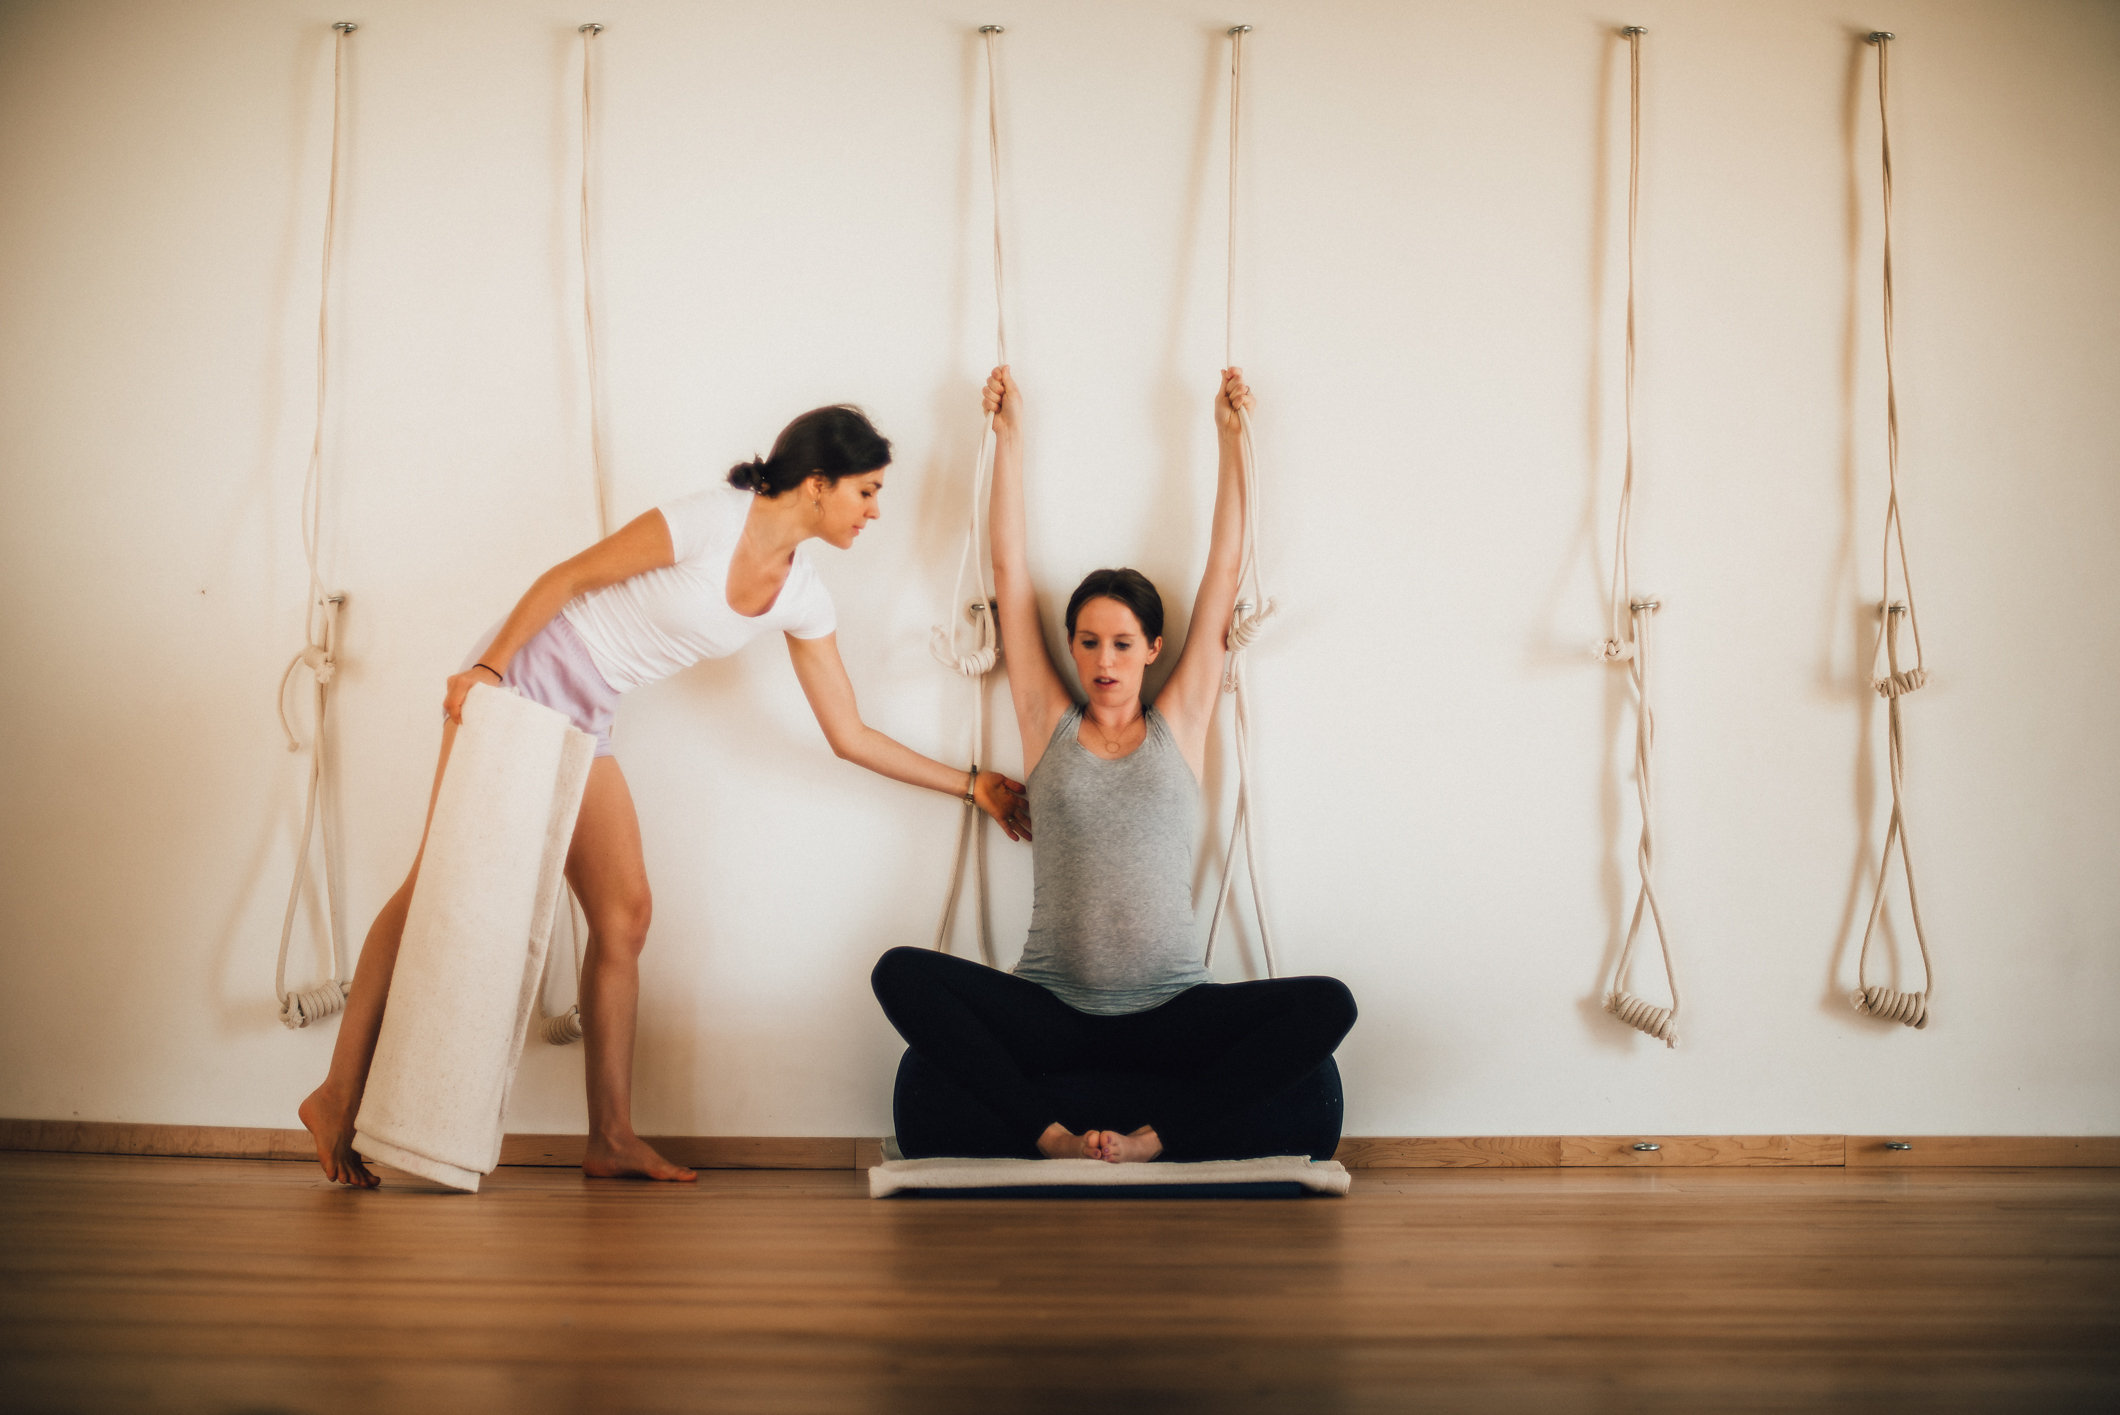 Certified Iyengar Yoga Teachers give individualized adjustments and corrections.